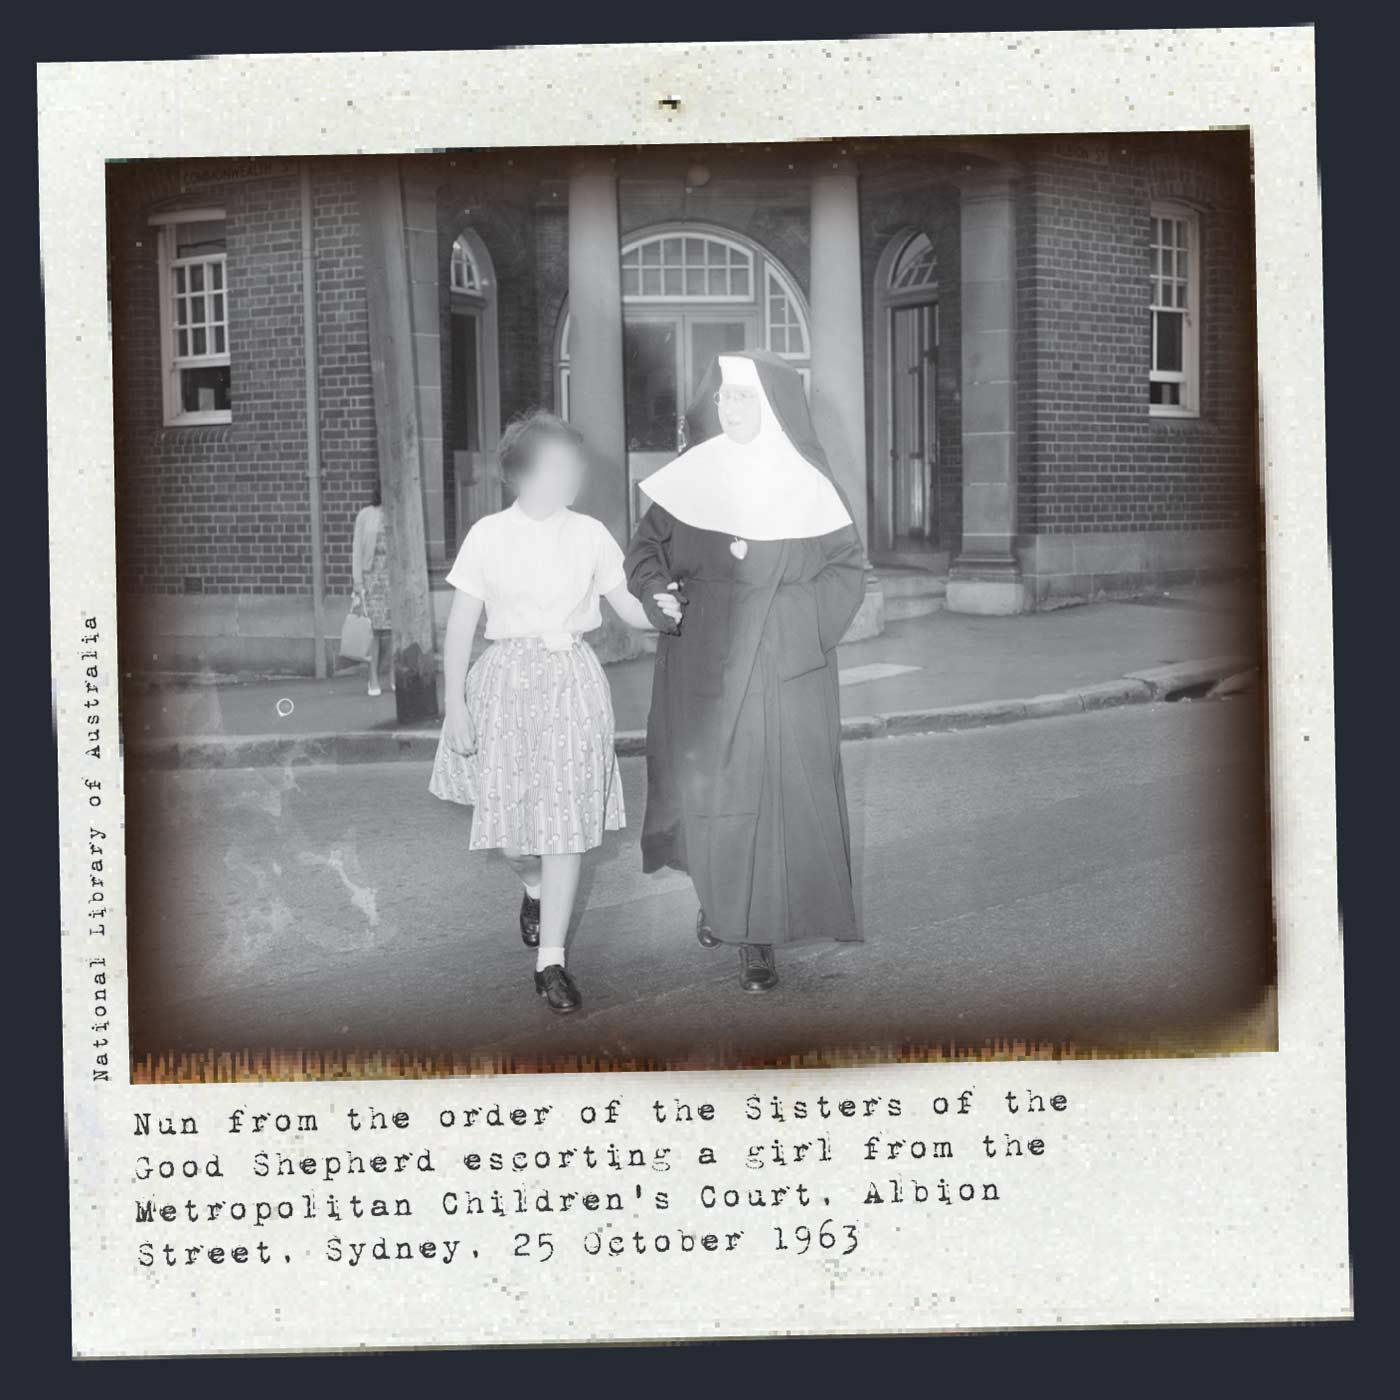 A black and white Polaroid photograph showing a nun wearing a long, dark tunic and veil and a white whimple around her face. She holds the hand of a young girl, whose face has been blurred. The girl wears a white shirt and patterned skirt. The pair are walking at the front of a brick building. Typewritten text underneath reads 'Nun from the order of the Sisters of the Good Shepherd escorting a girl from the Metropolitan Children's Court, Albion Street, Sydney, 25 October 1963'.  - click to view larger image